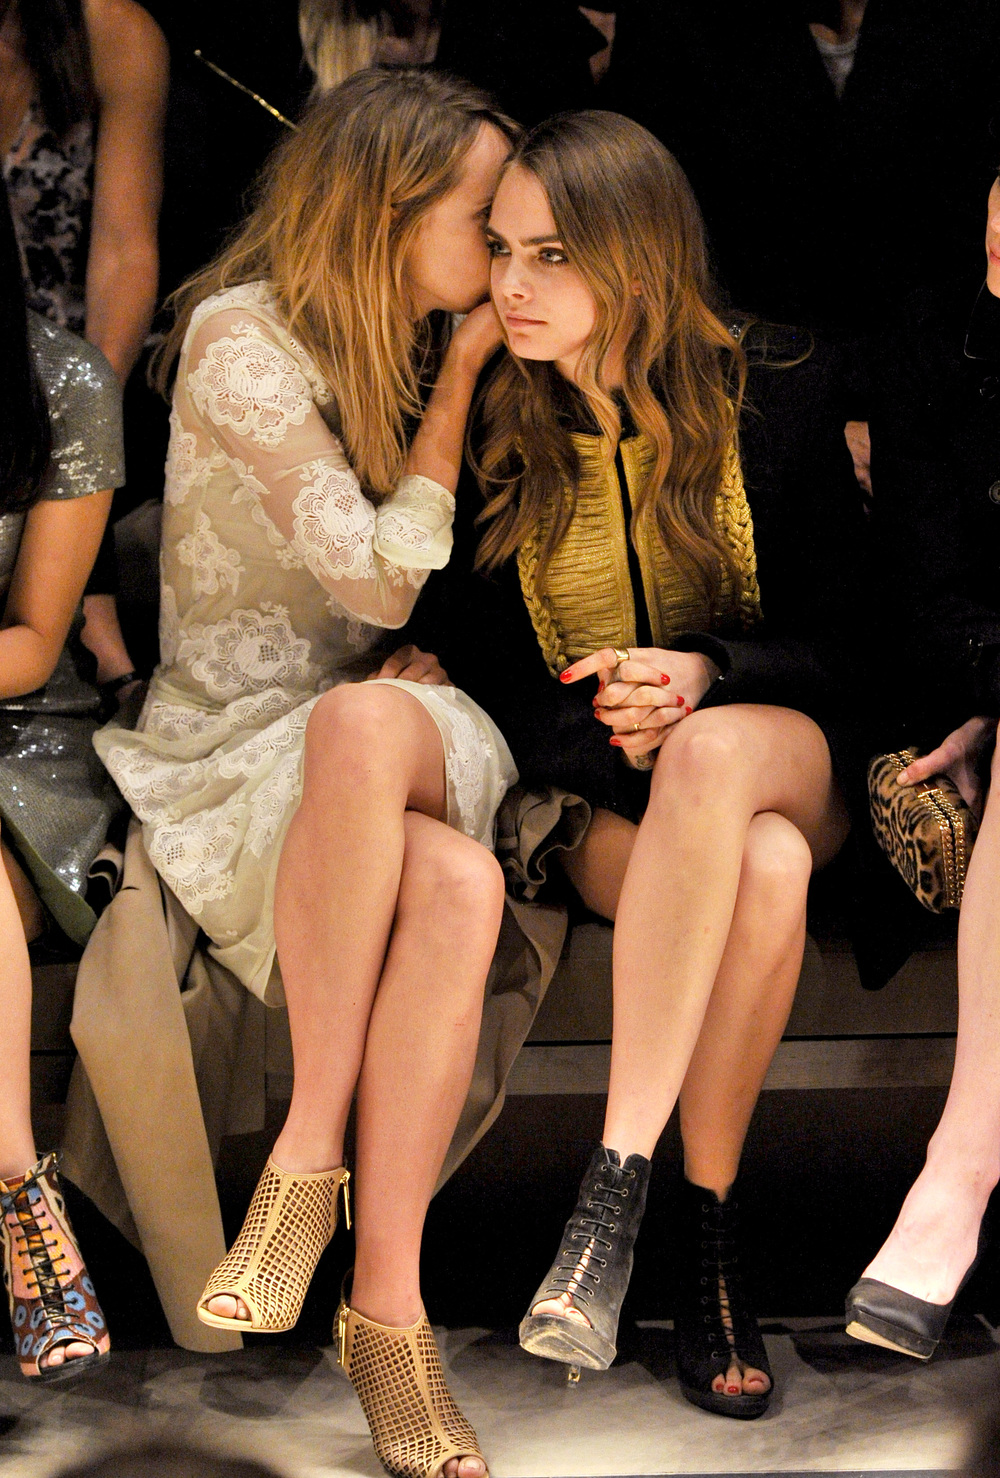 Suki-Waterhouse-and-Cara-Delevingne-on-the-front-row-at-the-Burberry-_London-In-Los-Angeles_-event.jpg